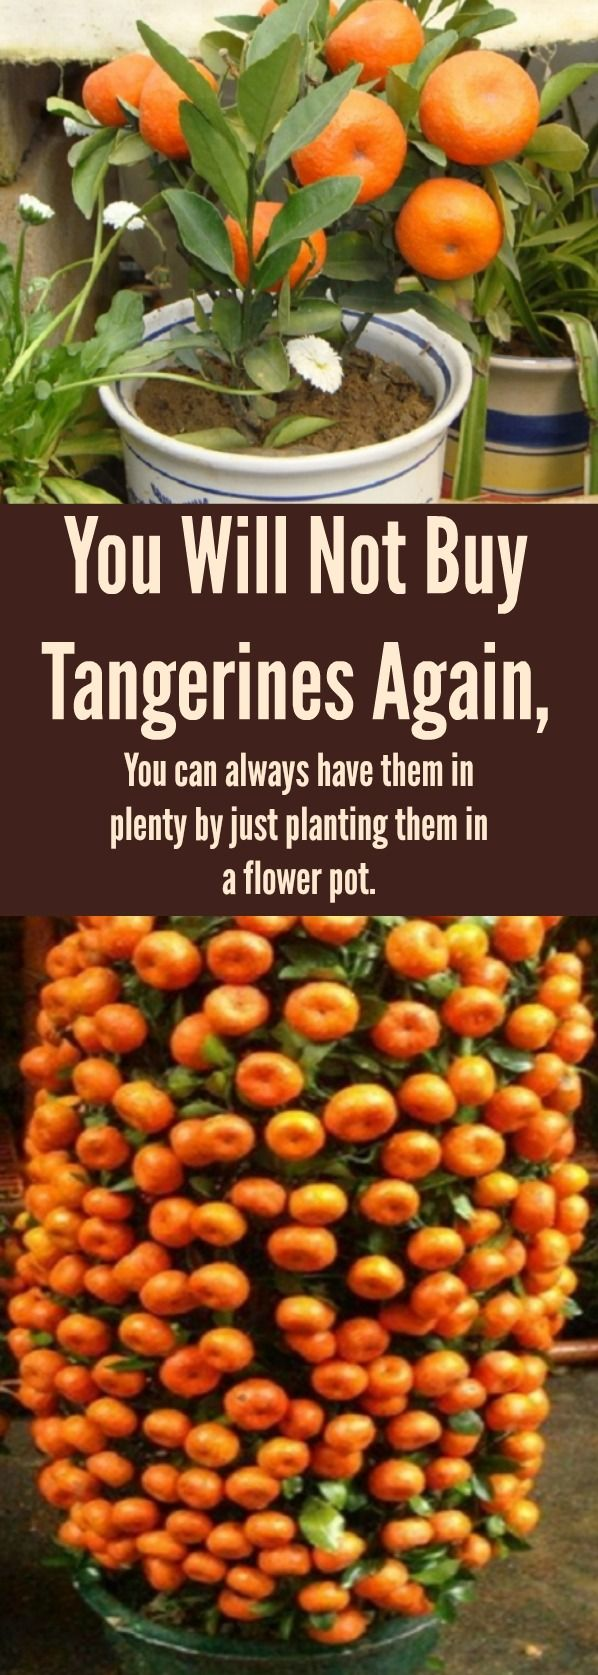 You Will Not Buy Tangerines Again, You can always have them in plenty by just planting them in a flower pot